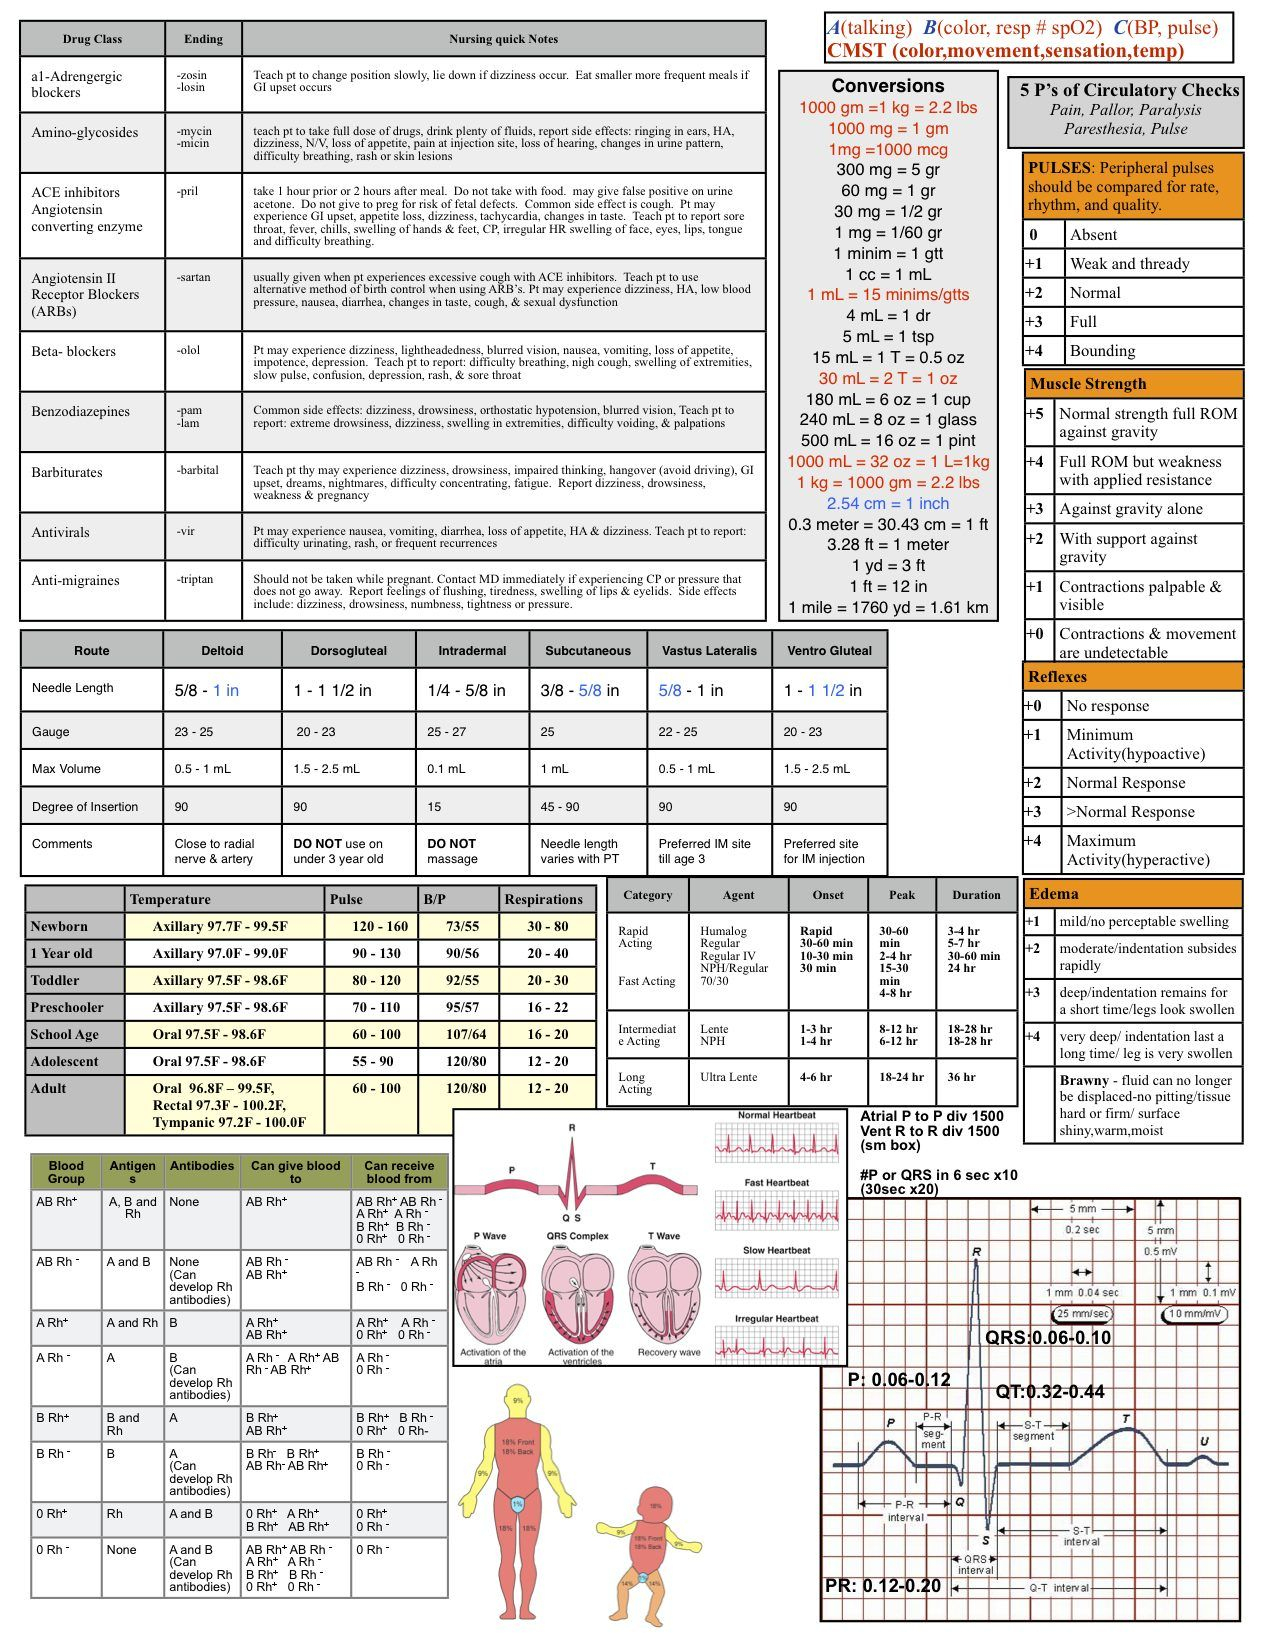 Nursing Reference Sheet | Geneeskunde, Endocriene Systeem